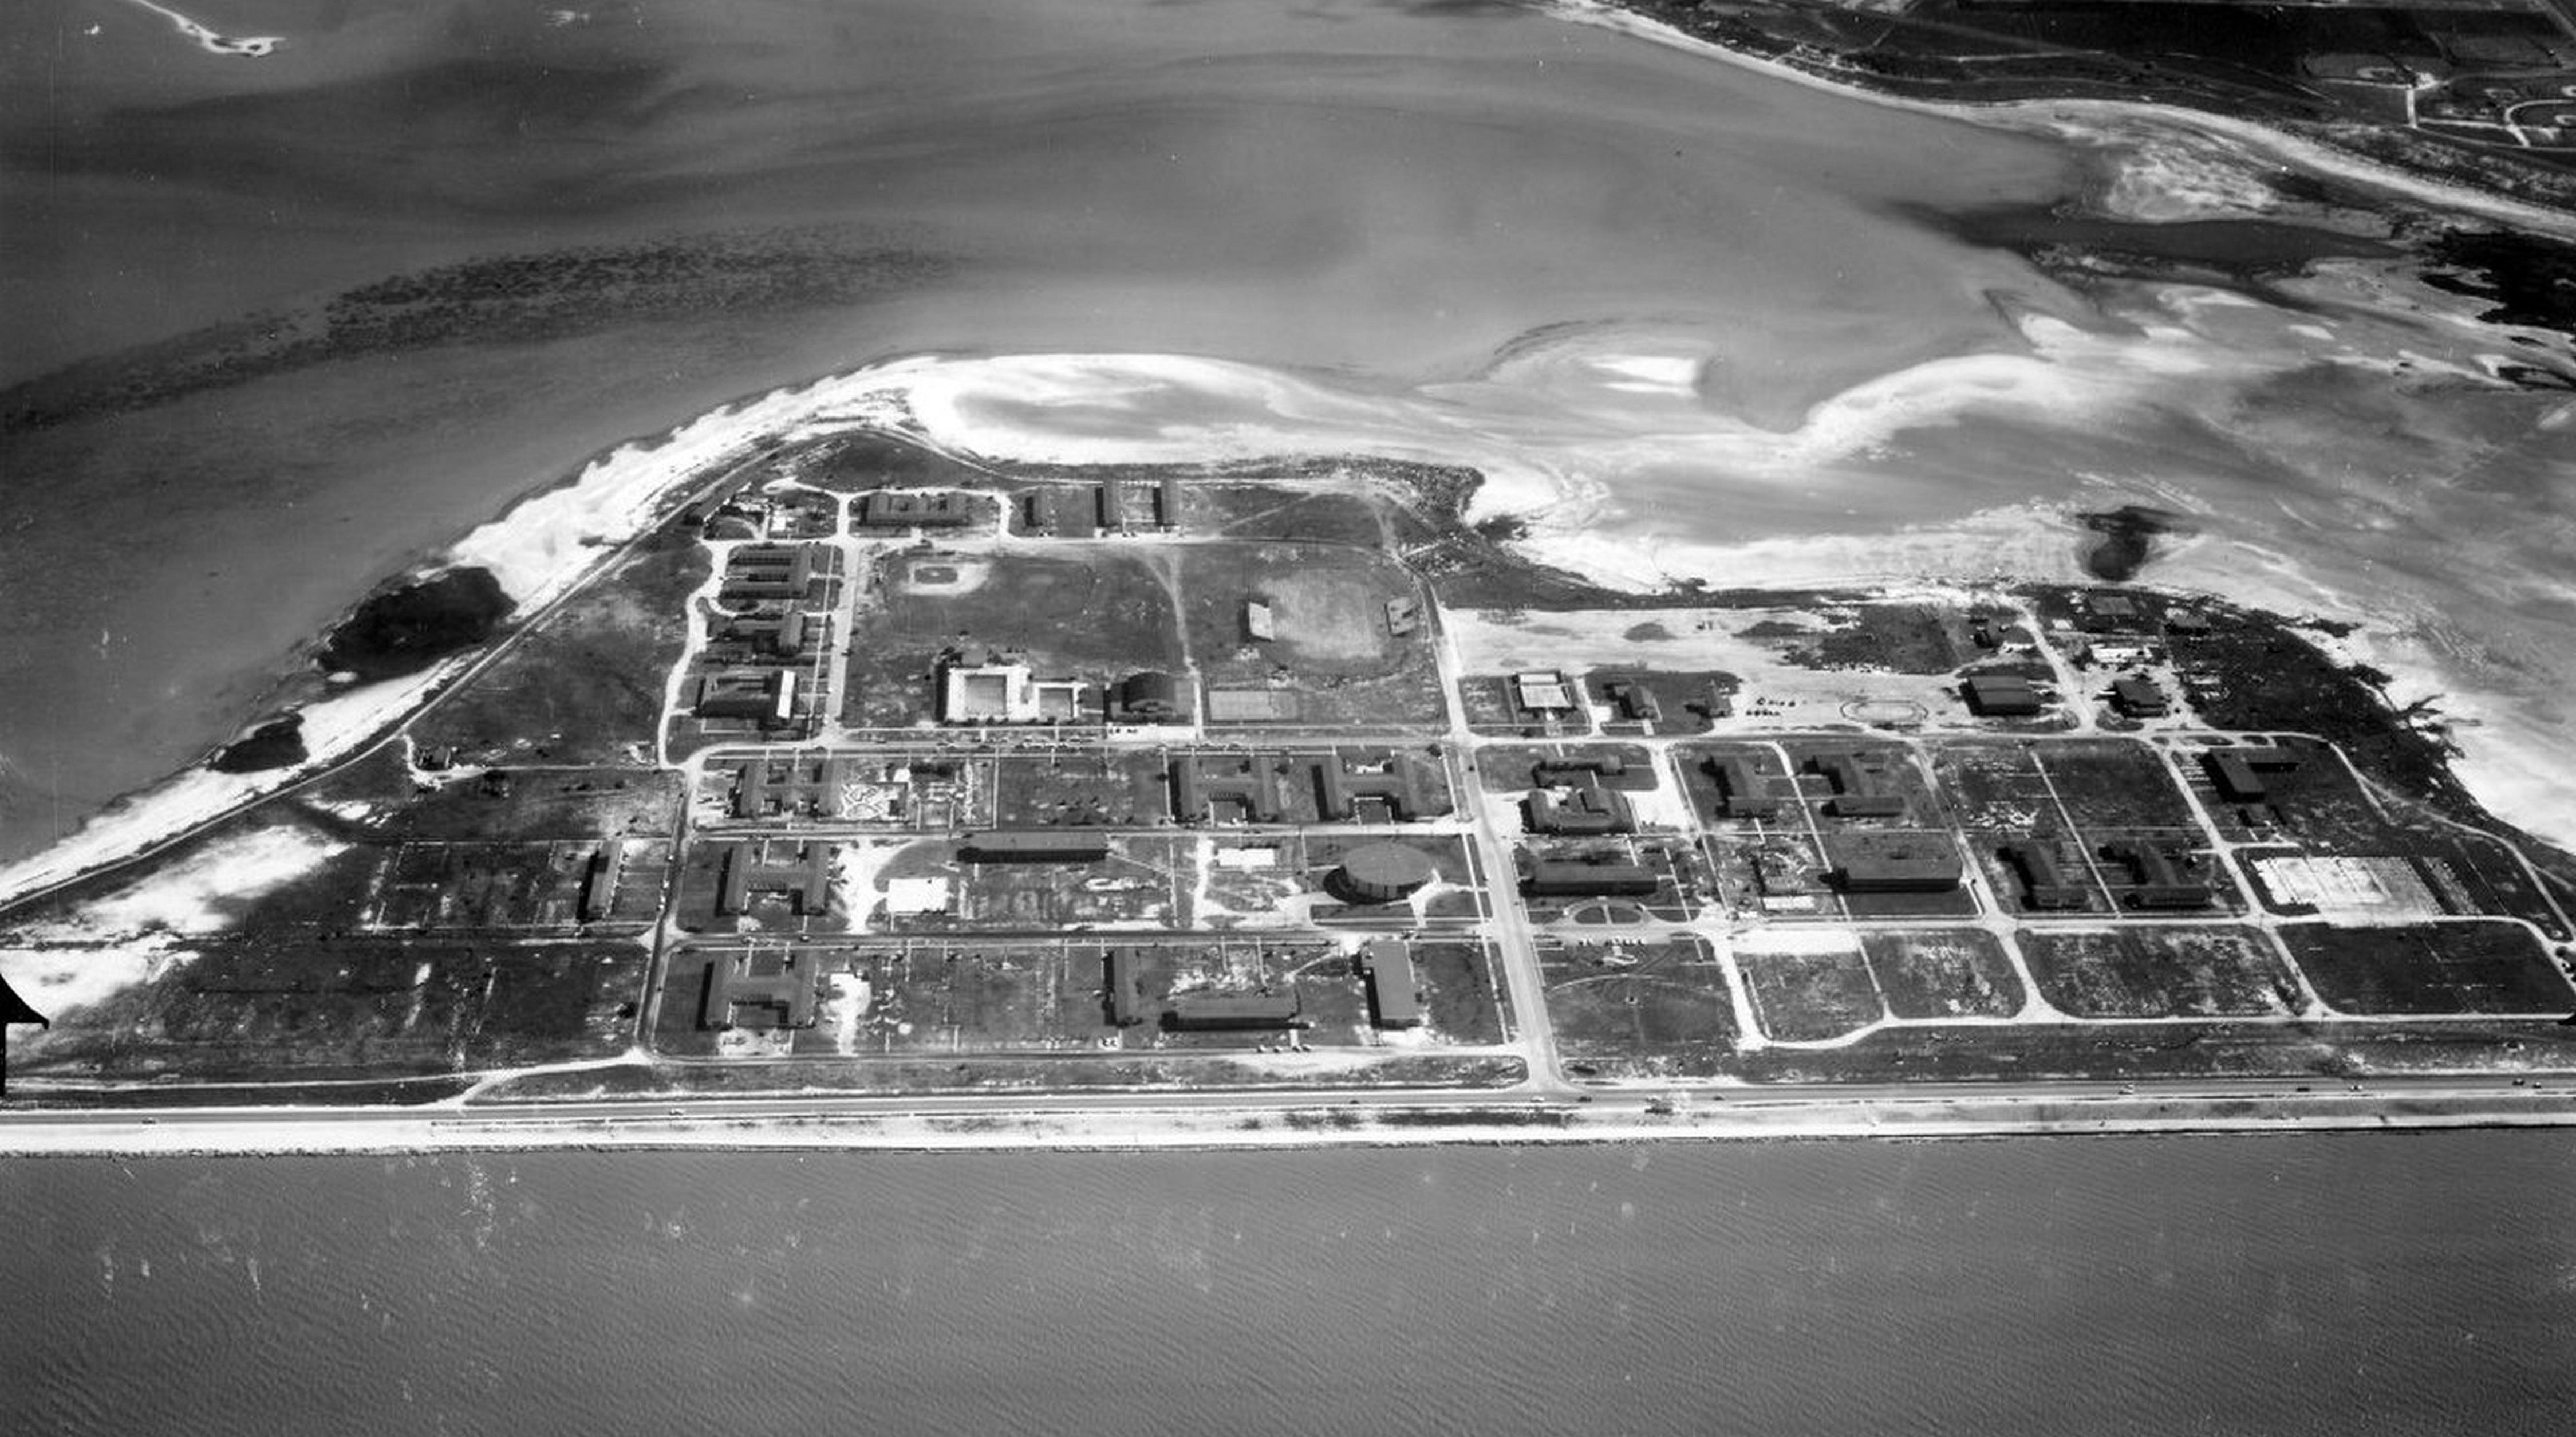 Aerial view of Ward Island in March 1965 when it was occupied by the University of Corpus Christi.